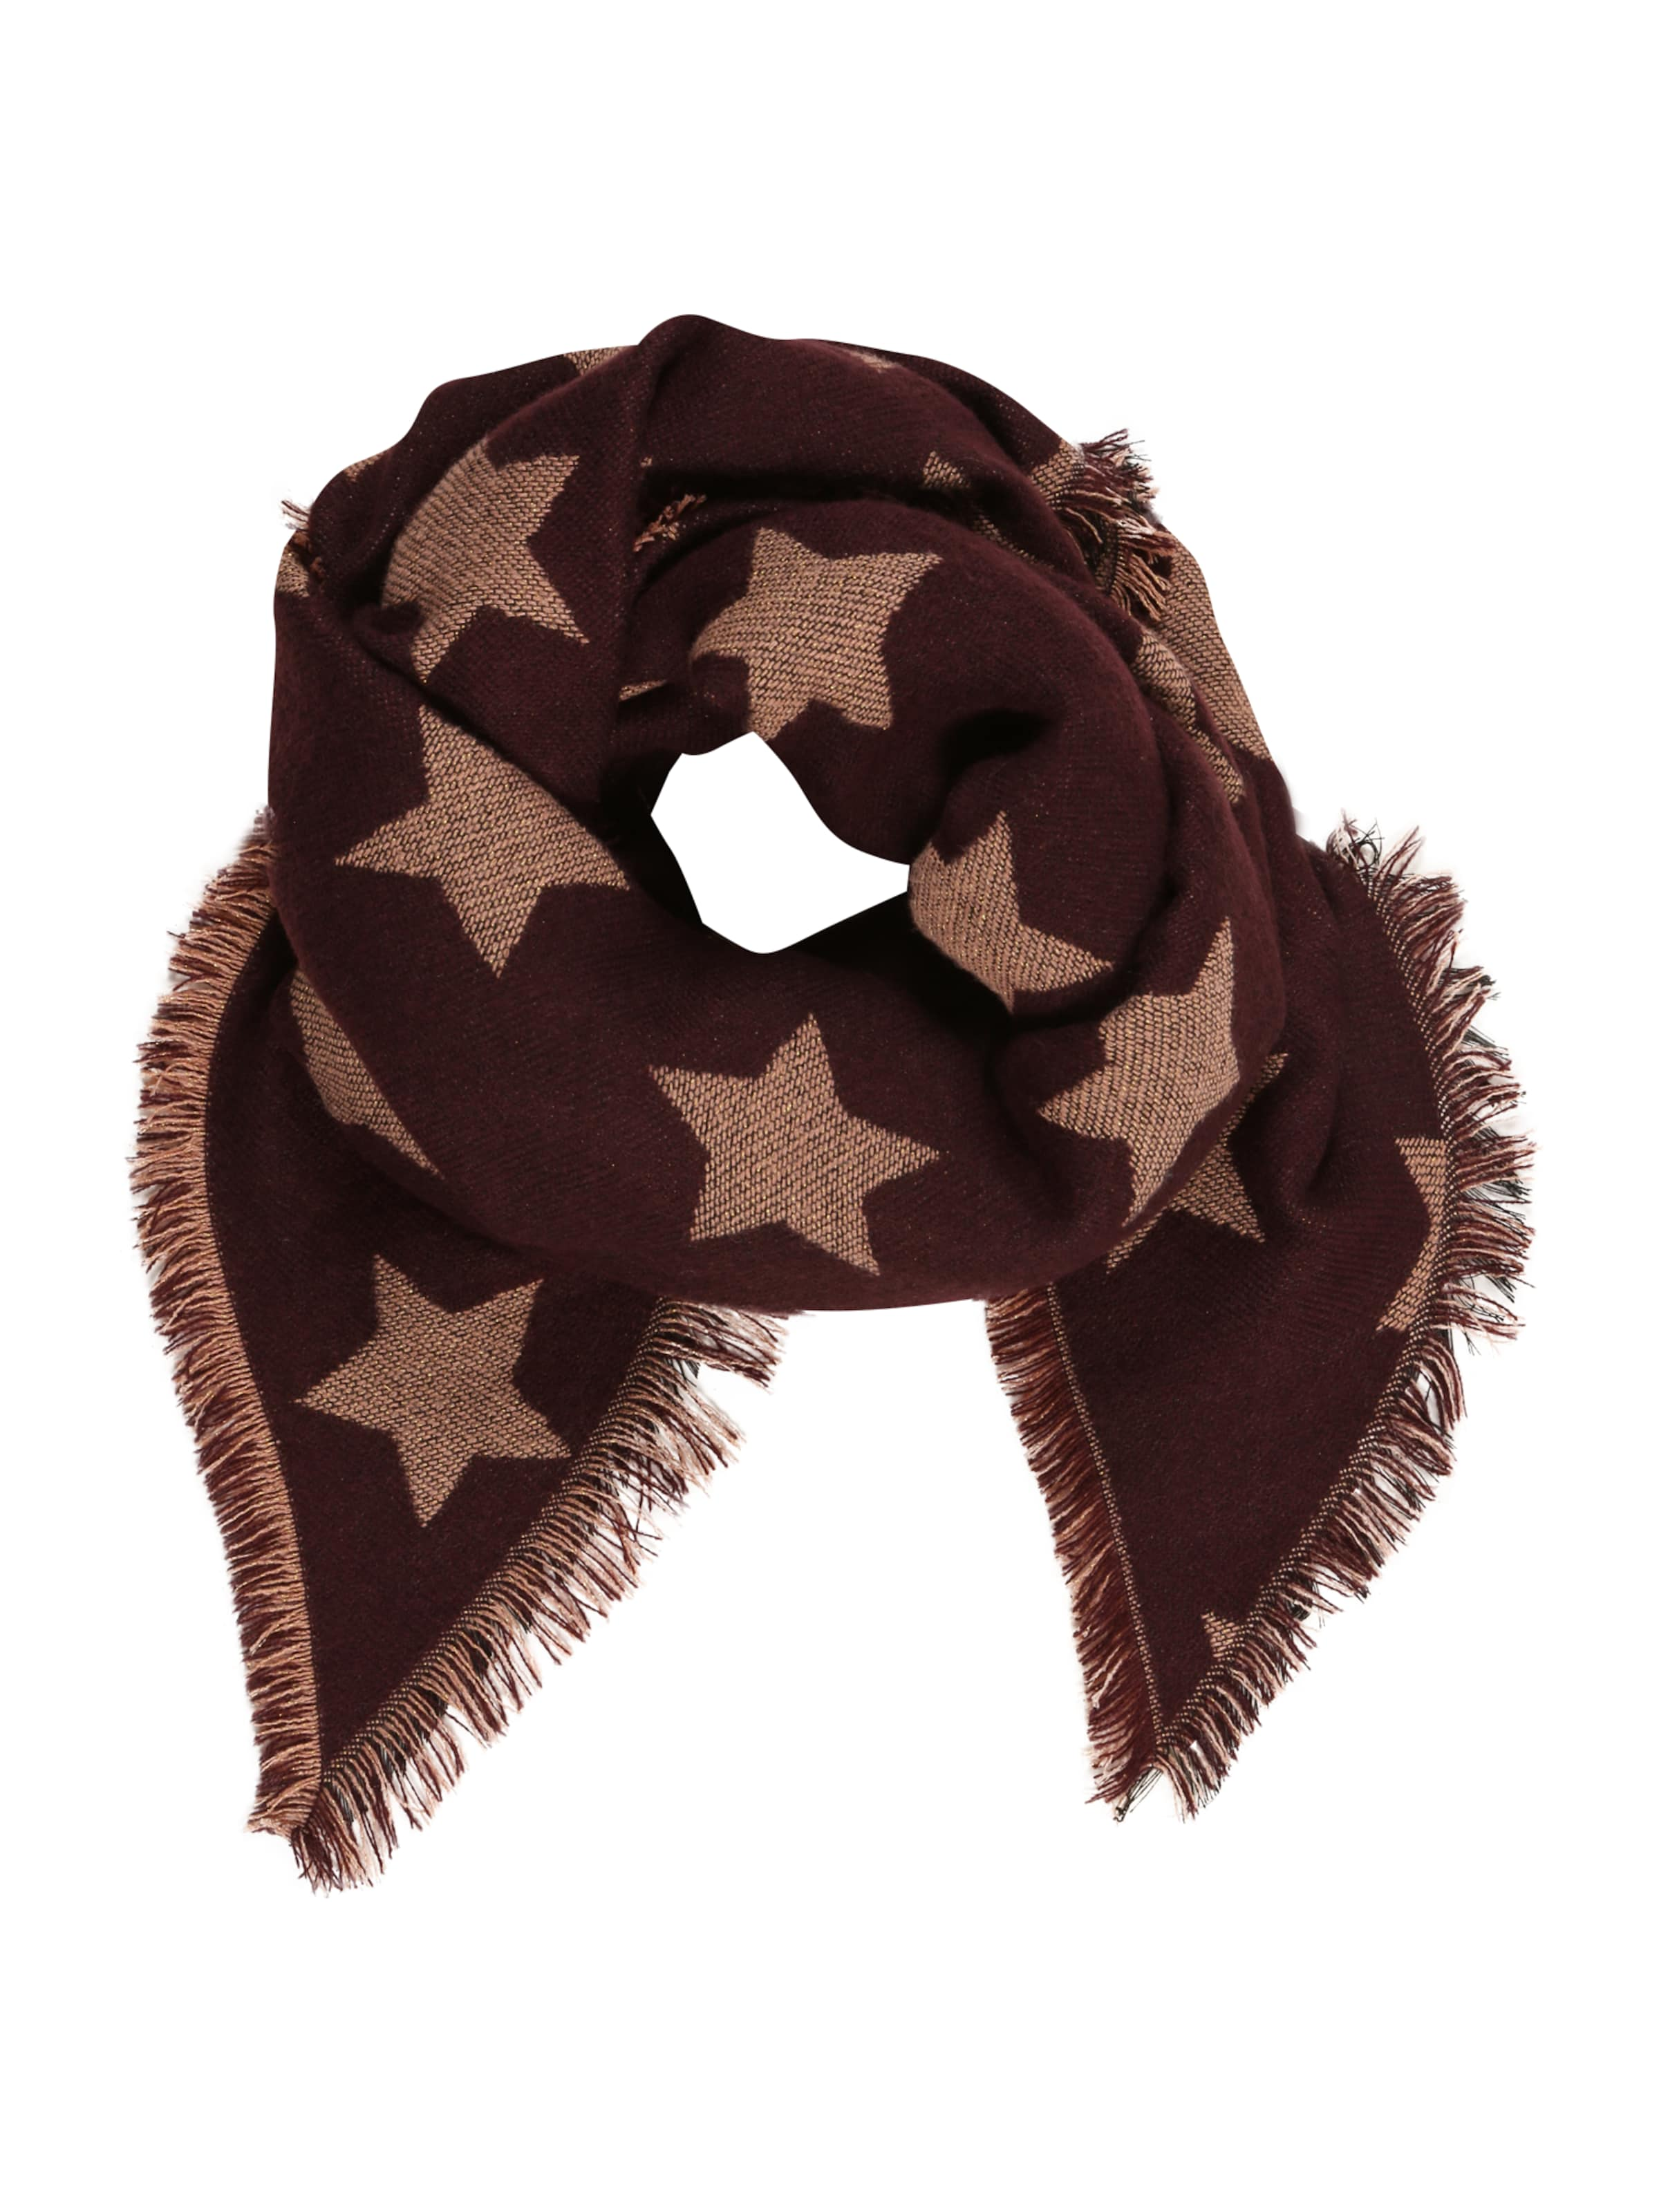 Marron Pieces Foulard En 'pcluna' 'pcluna' Marron En Pieces Foulard l1KuT3cFJ5